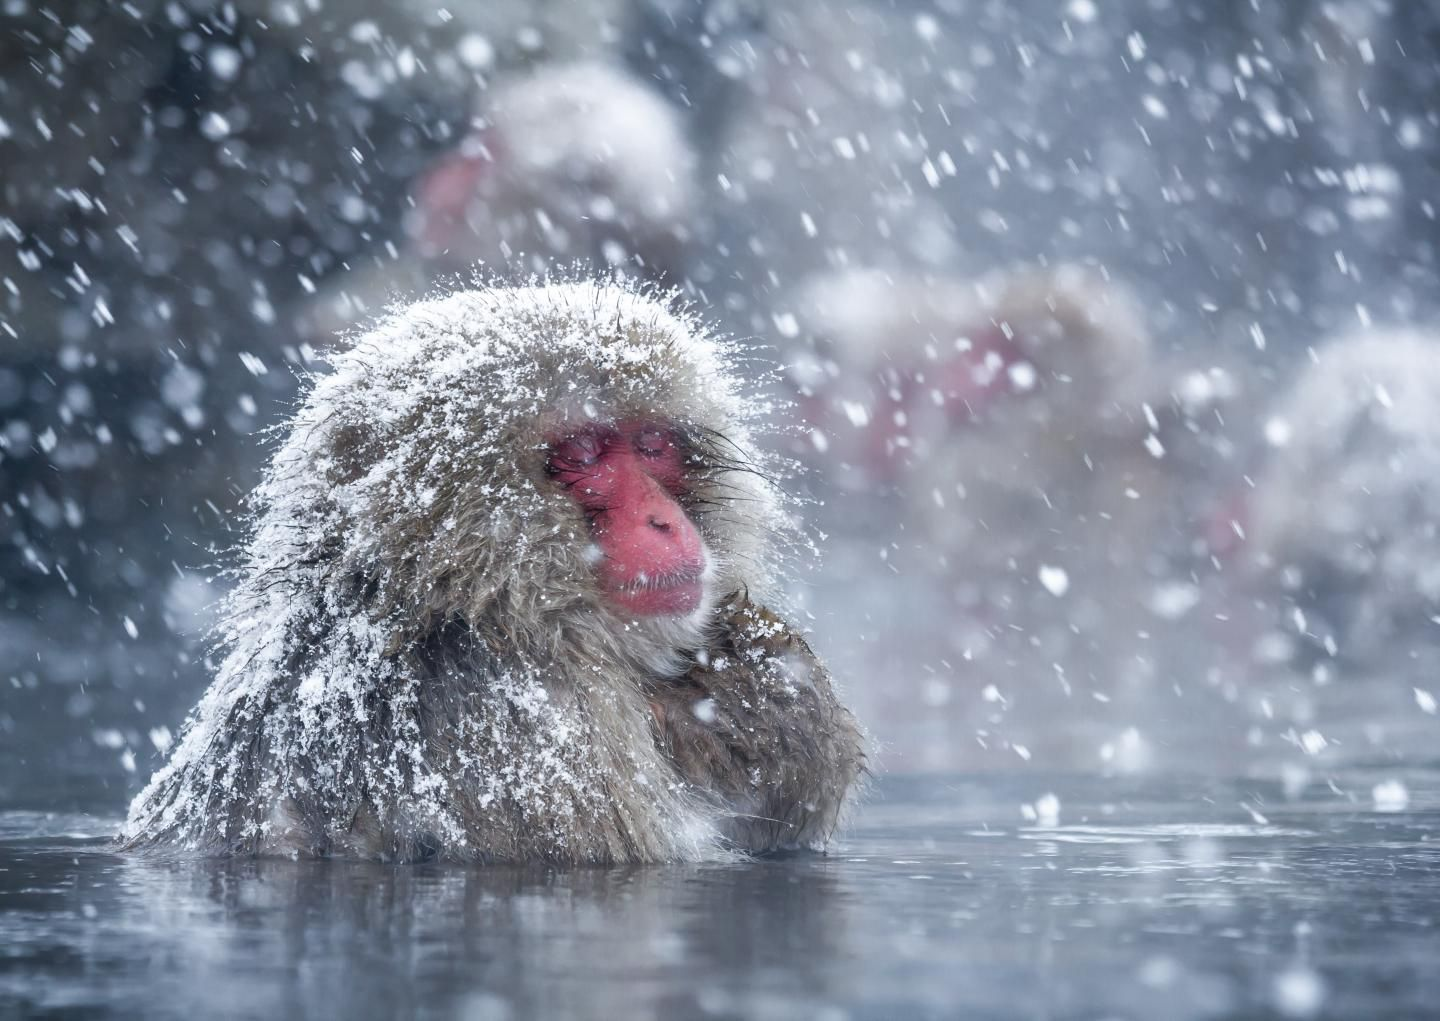 Chilling Out in Hot Springs May Help Japan's Snow Monkeys Reduce Stress |  Smart News | Smithsonian Magazine